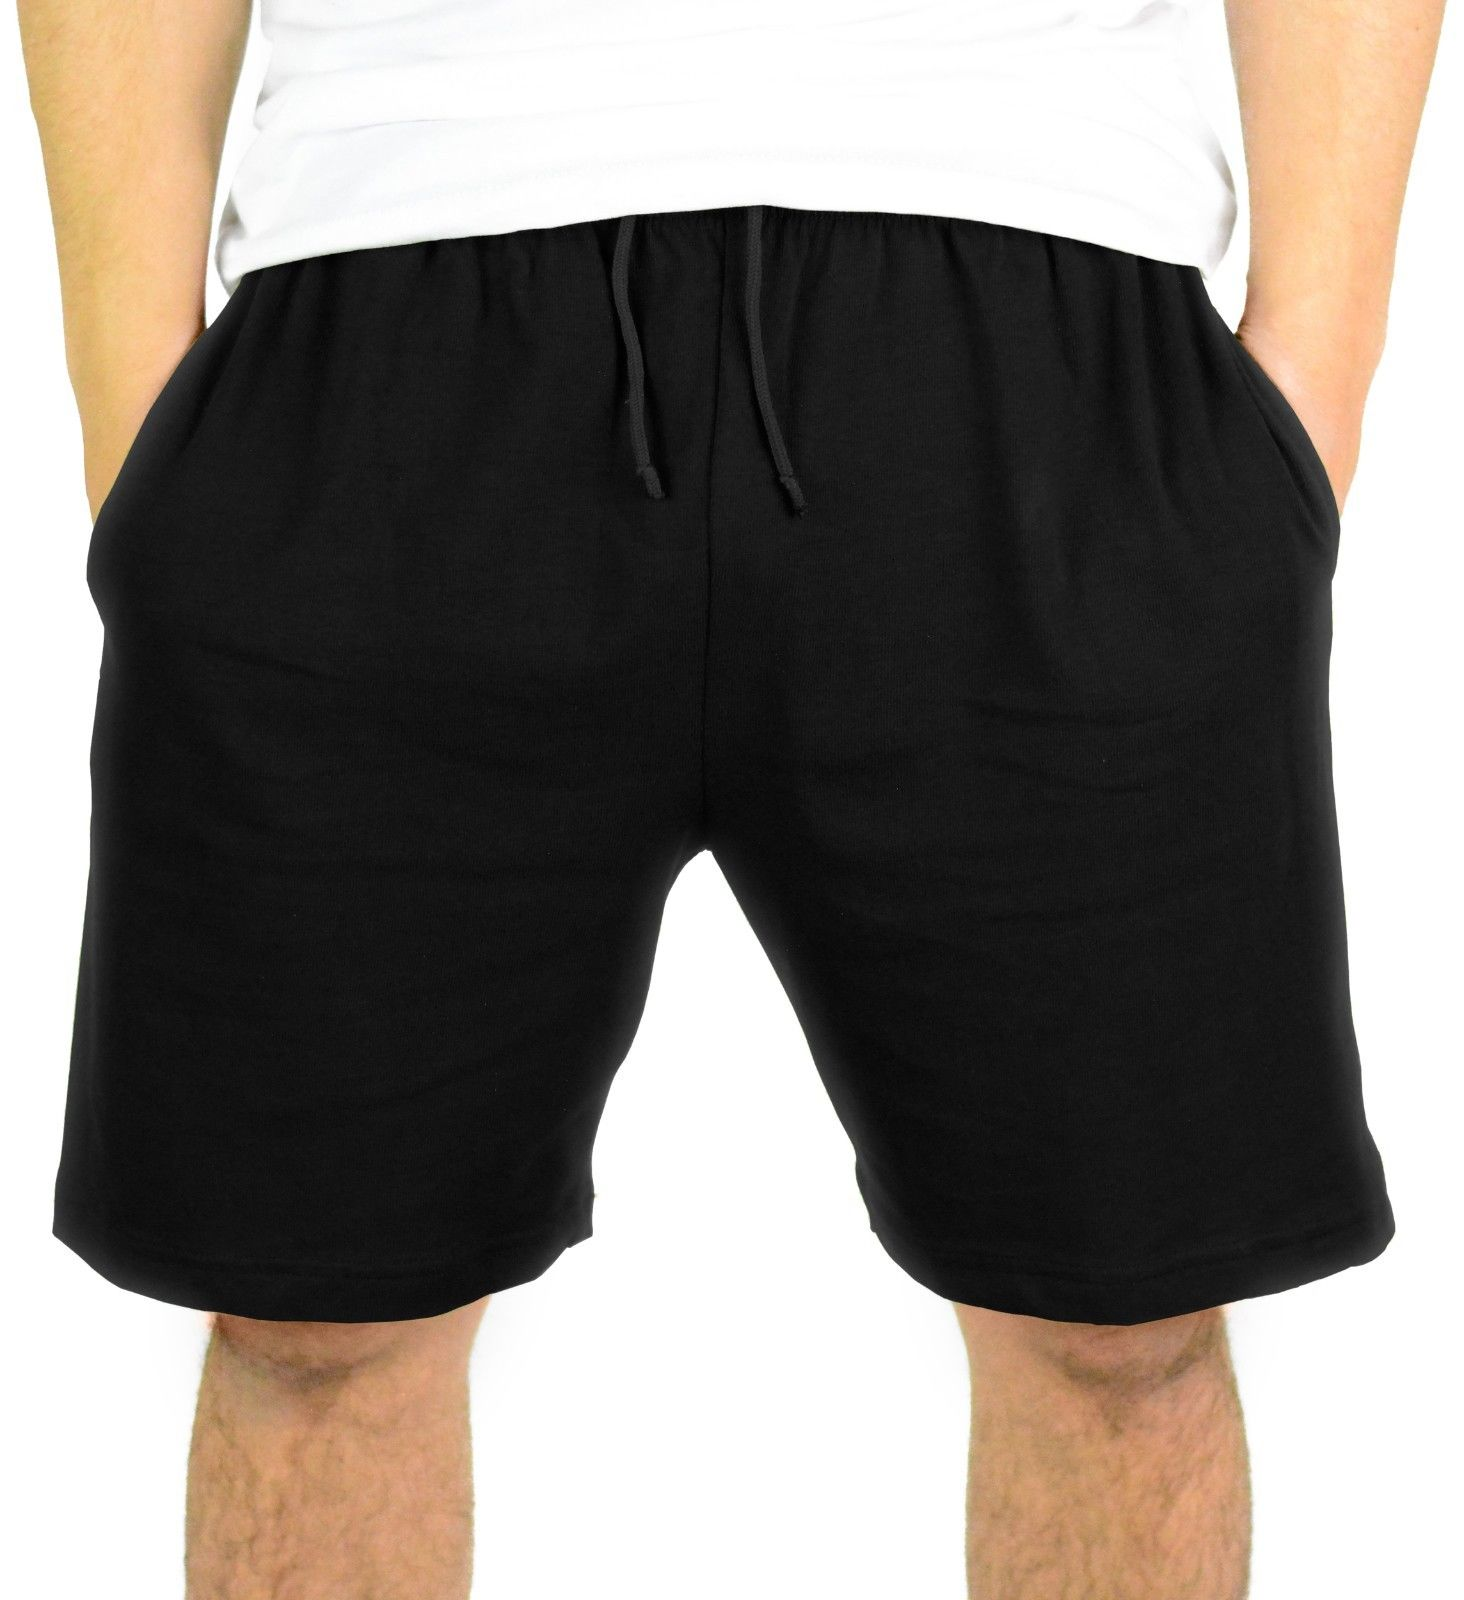 Shop for Men's Bike Shorts at REI - FREE SHIPPING With $50 minimum purchase. Top quality, great selection and expert advice you can trust. % Satisfaction Guarantee.